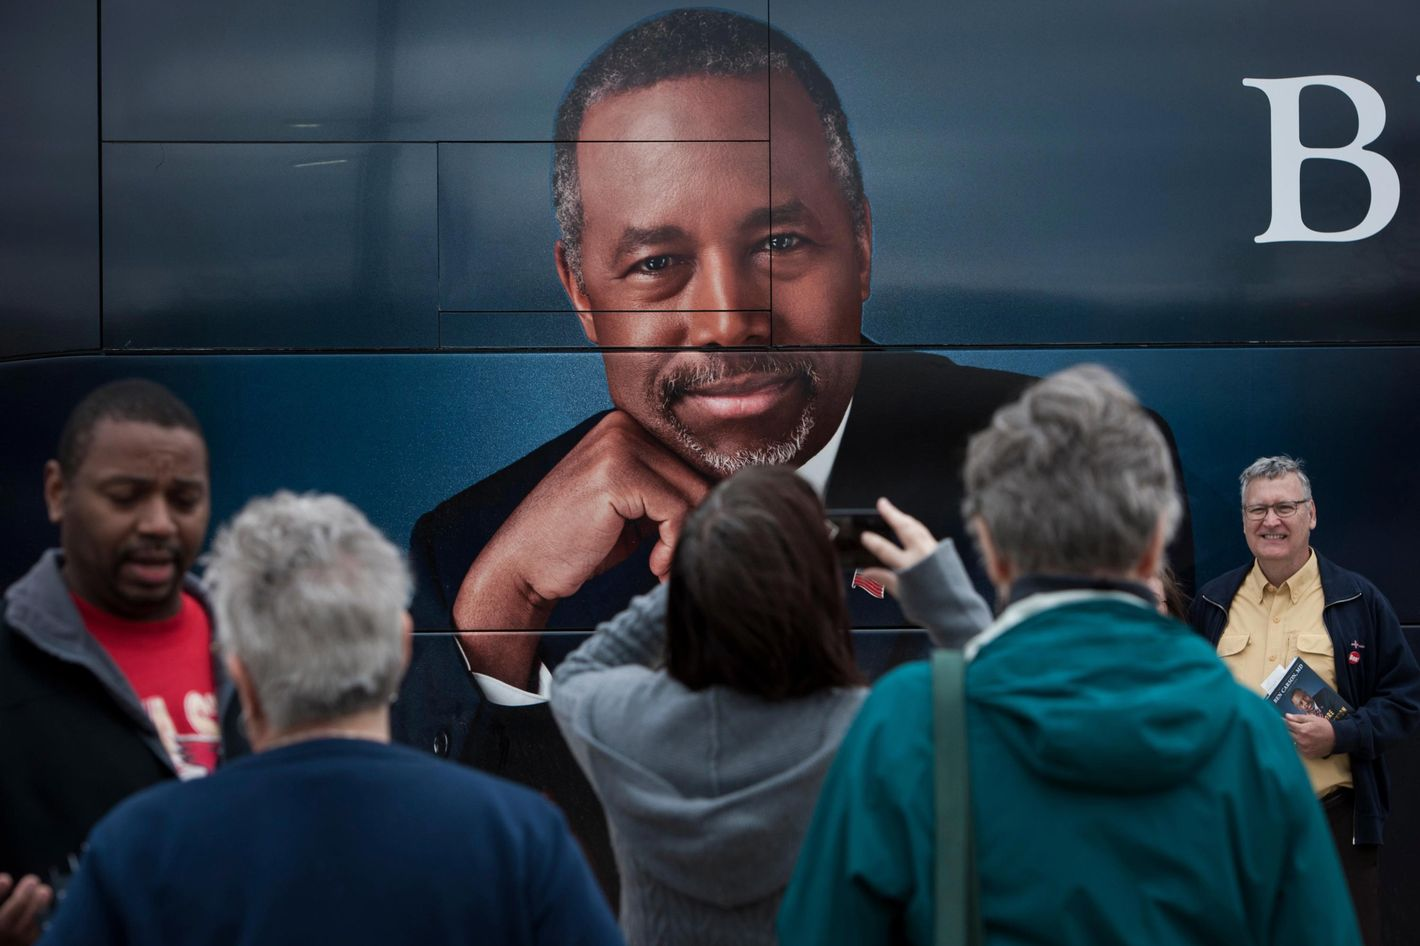 Supporters of Dr. Ben Carson stand near his book tour bus in Ames, Iowa